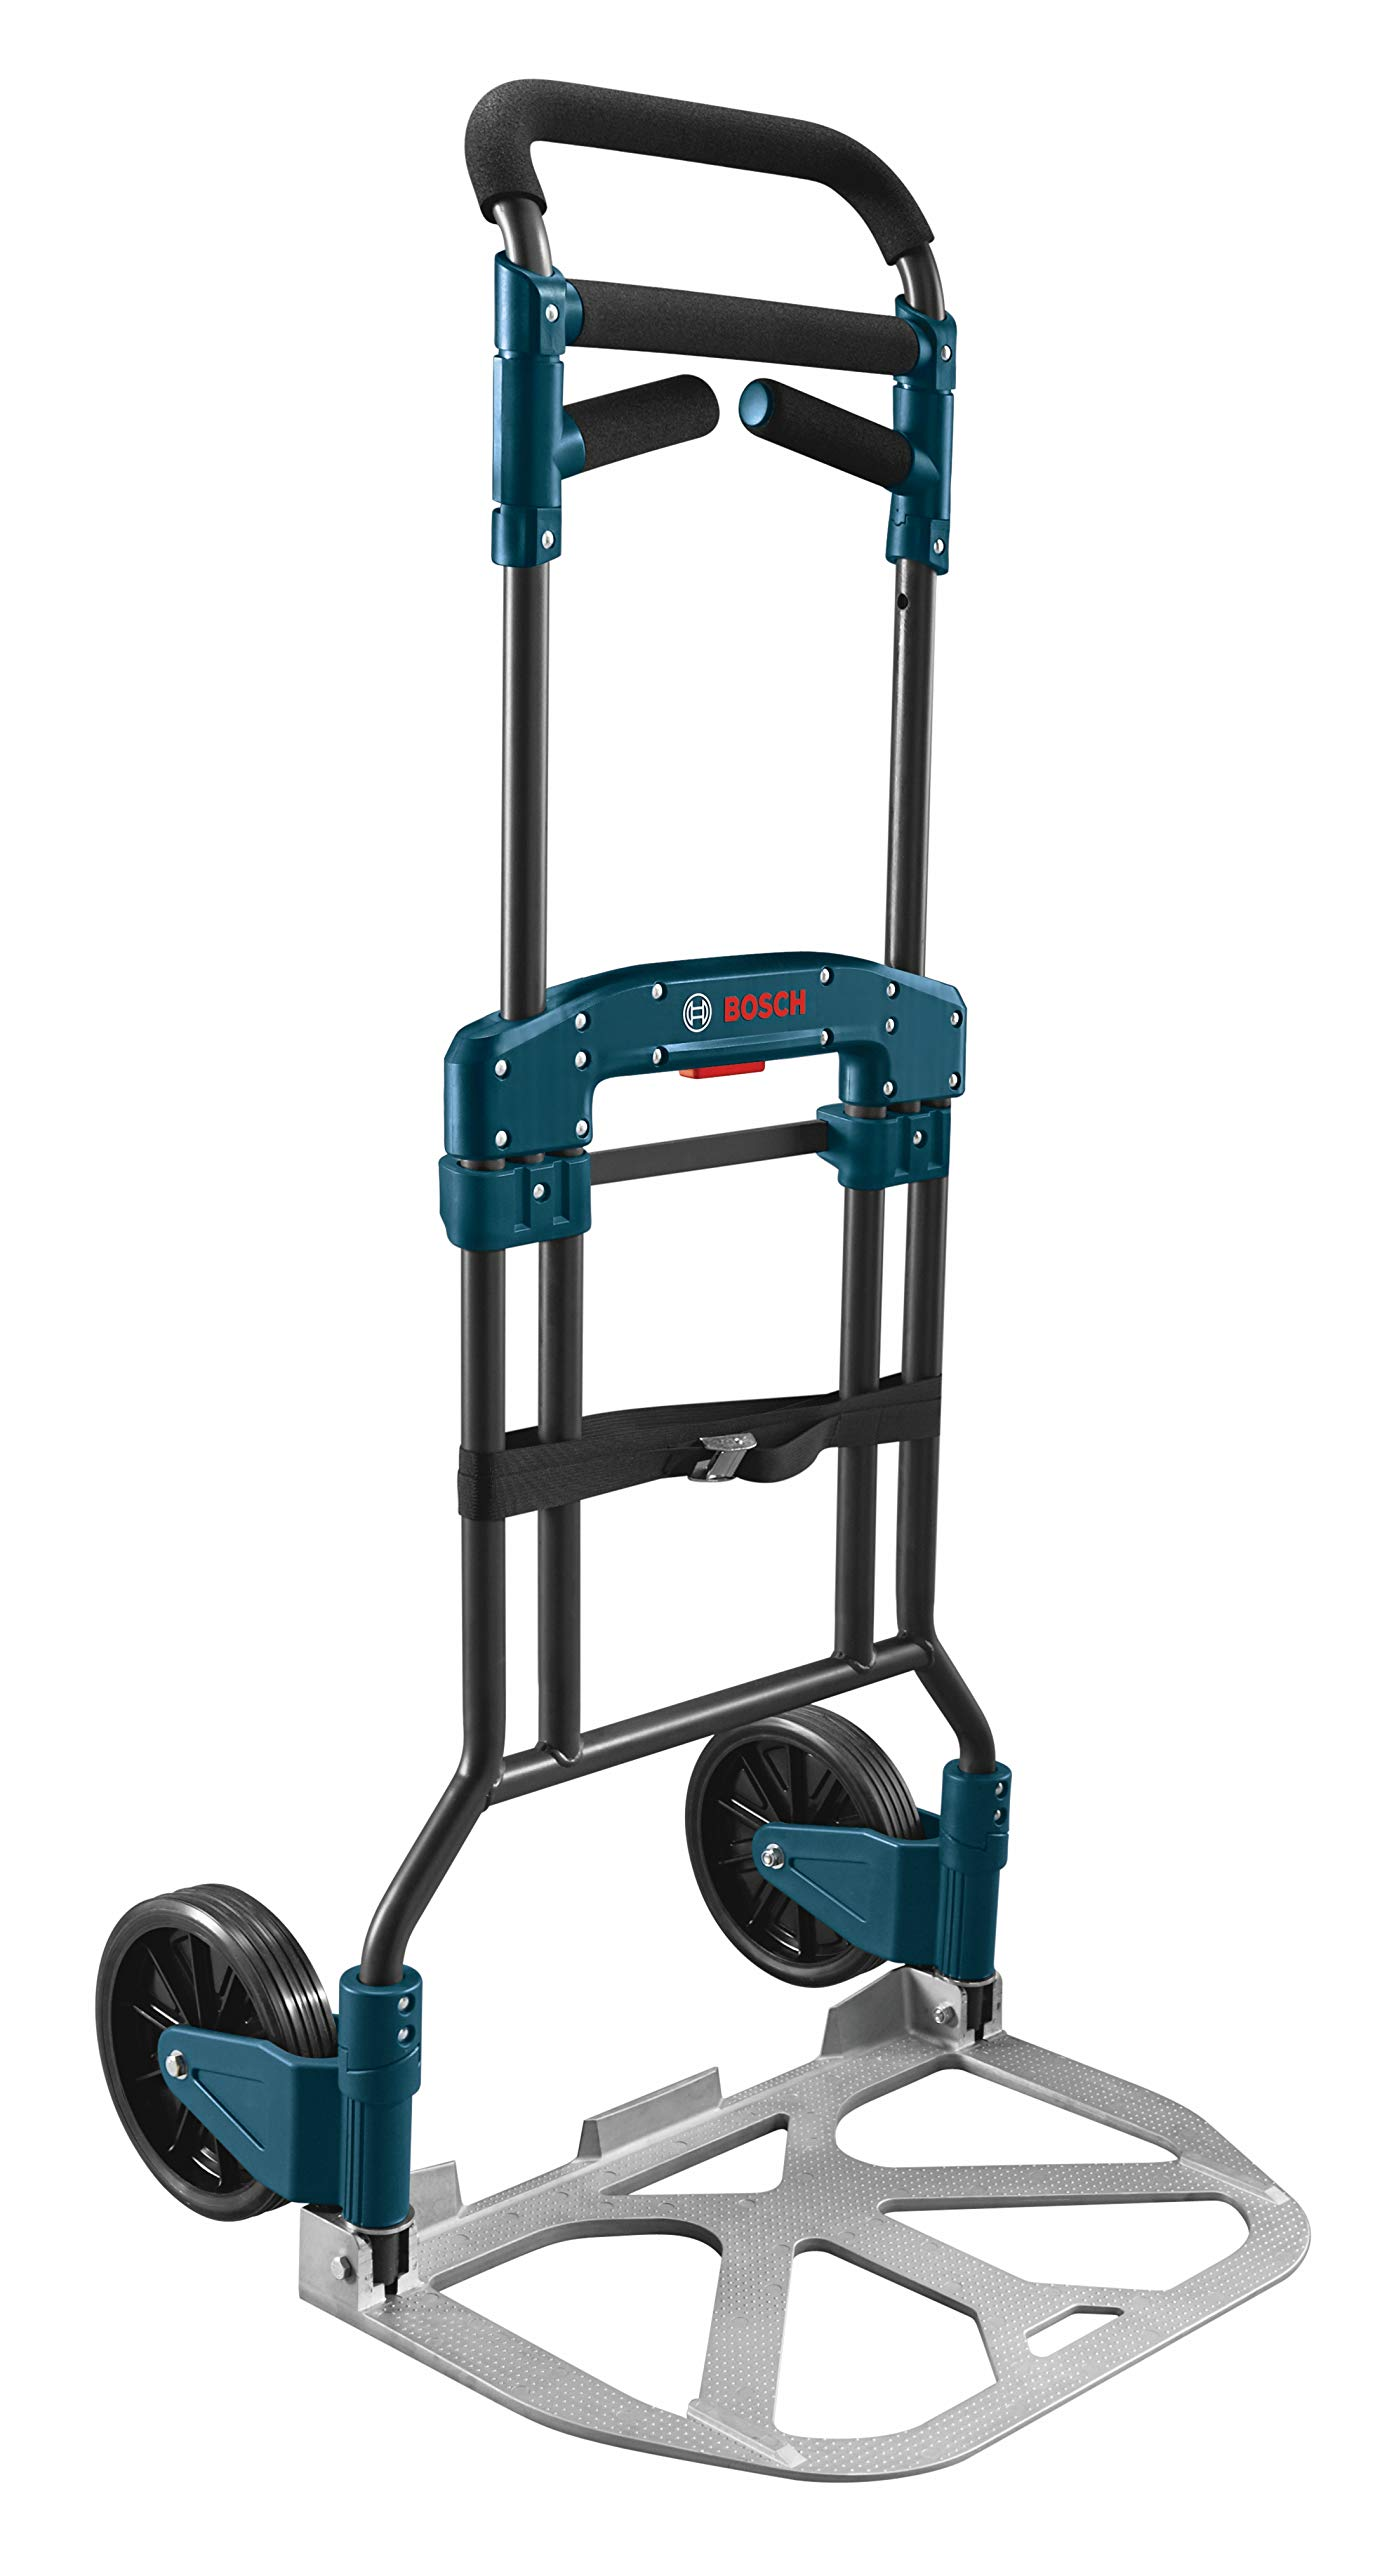 Bosch XL-CART Click and Go Storage System Use with L-Boxx Cases by Bosch